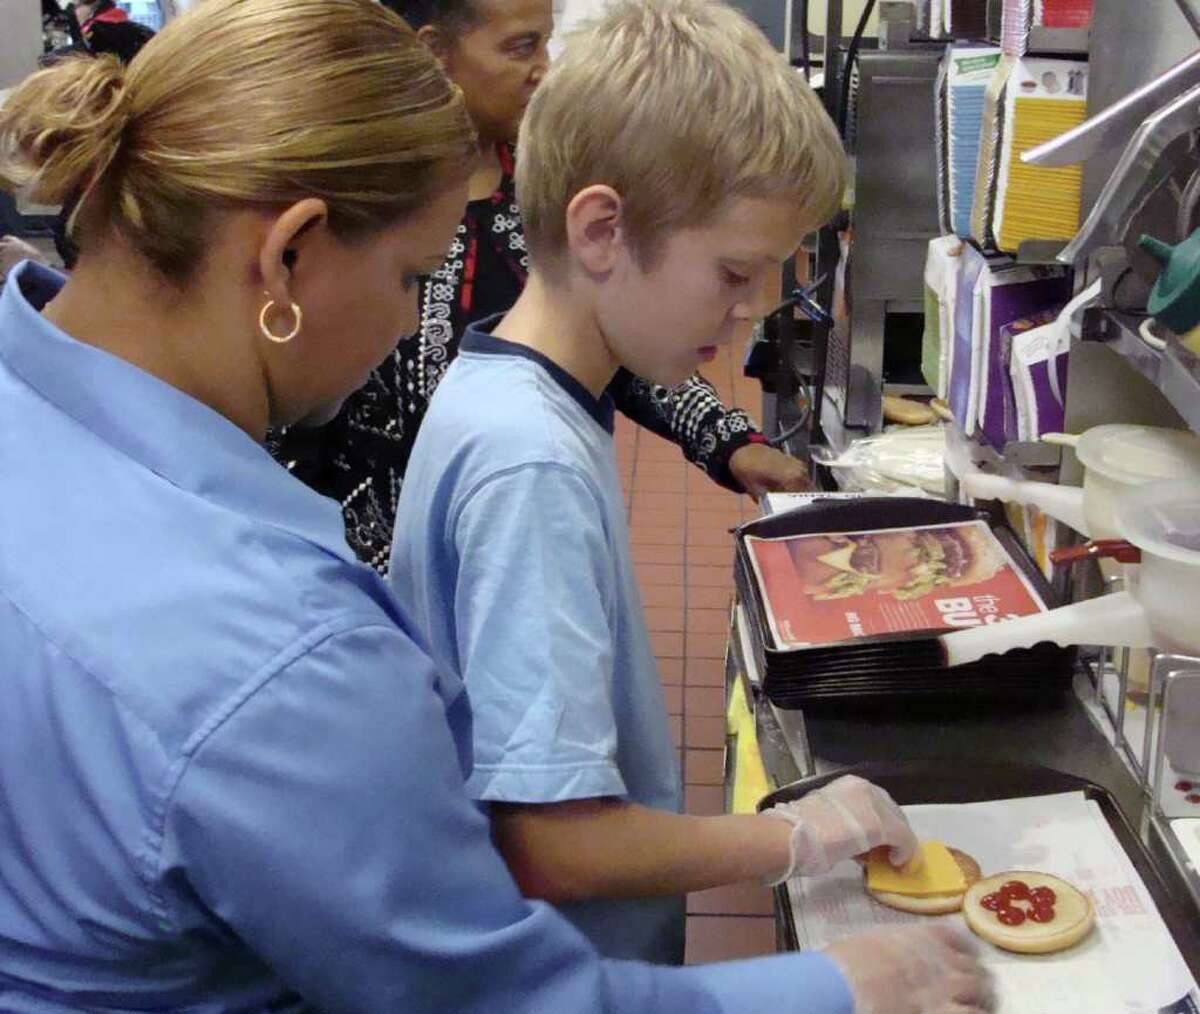 Jack Kyzer, 11, of Stratford, a 6th grade student at Eli Whitney School, gets help from Maria Pagan, store manager at McDonald's restaurant on 2439 Barnum Avenue, as he builds his own hamburger sandwich. In the background is Gail Grant, a local store marketer for McDonald's, who taught Jack and his classmates about making healthy meal choices and developing nutritionally sound eating habits for life.